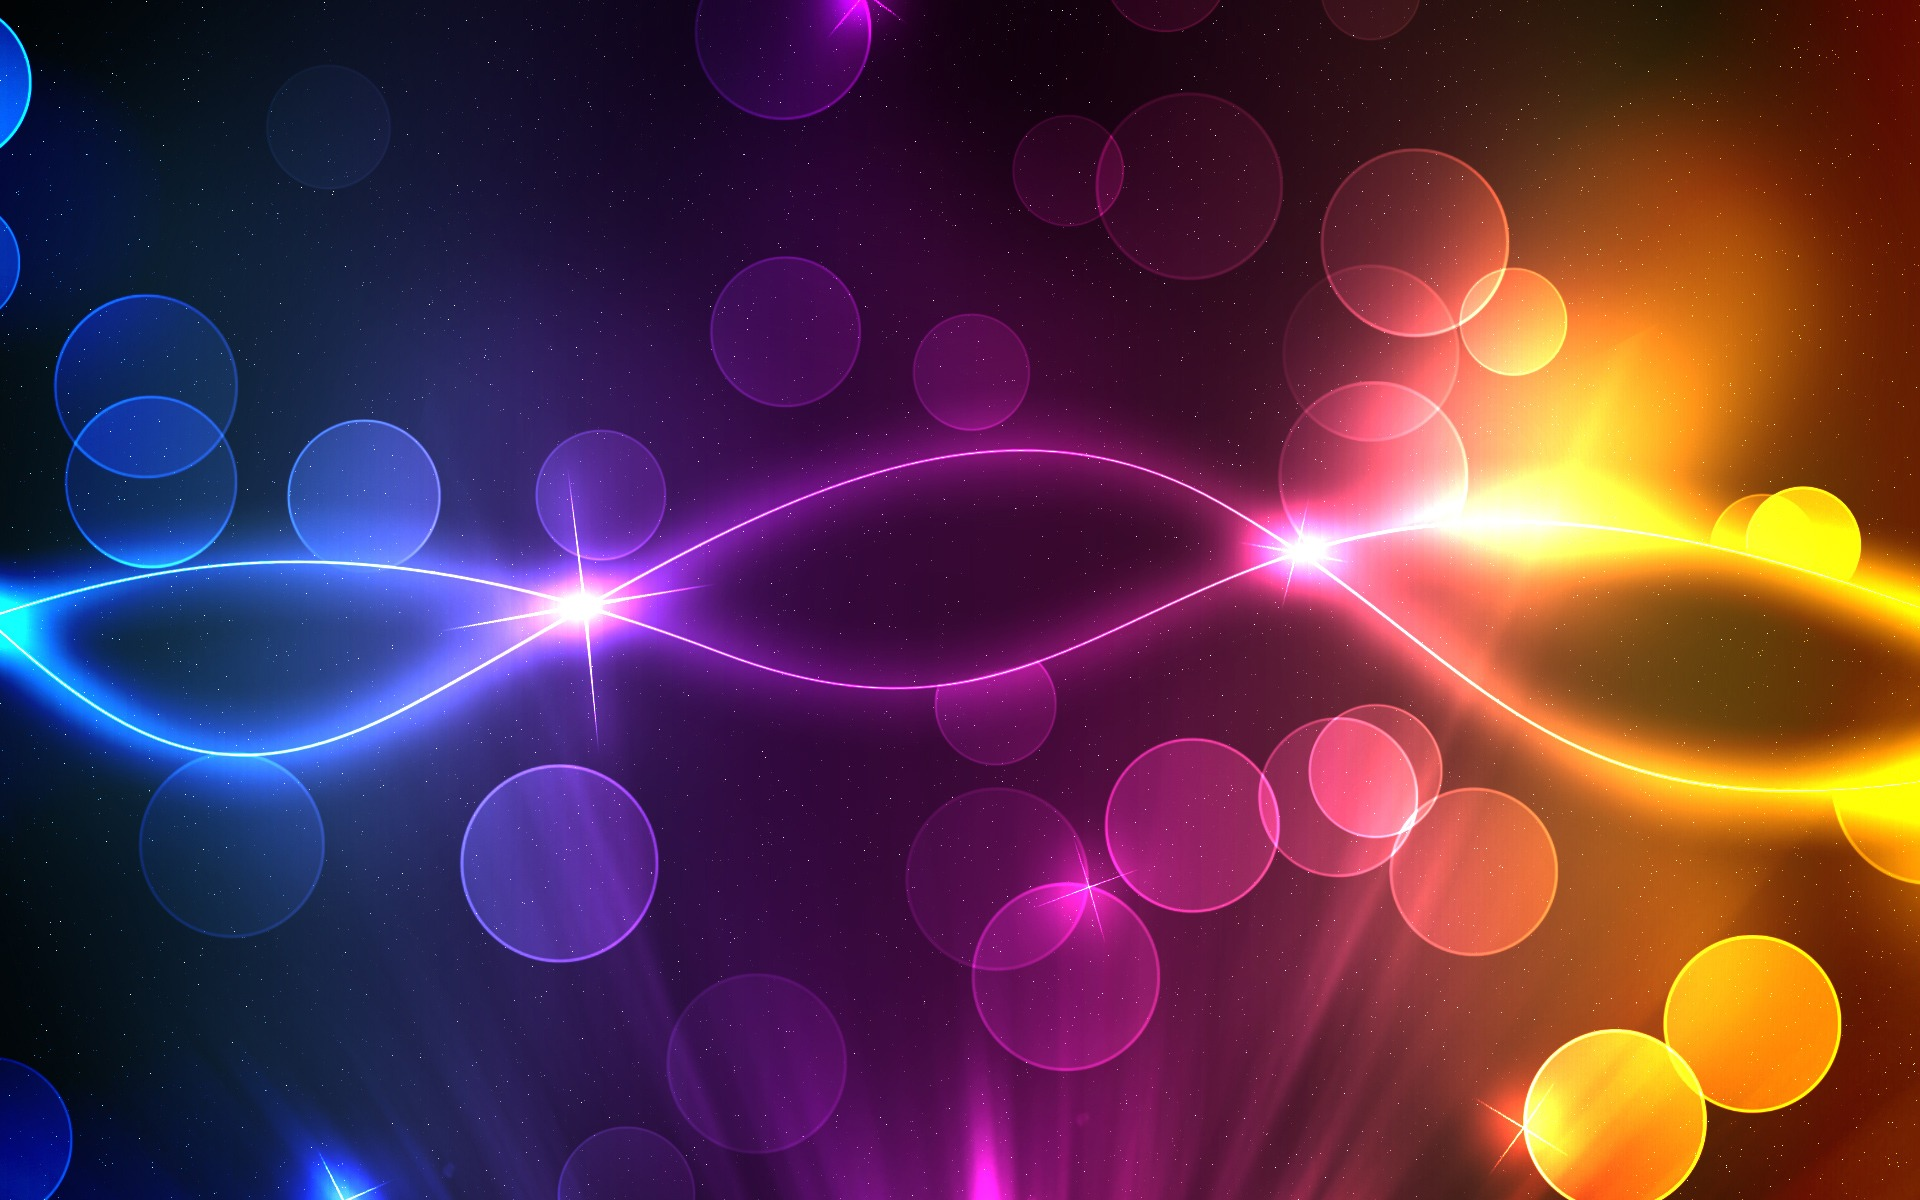 bokeh_starflight_wallpaper_abstract_other_wallpaper_1920_1200_widescreen_2089